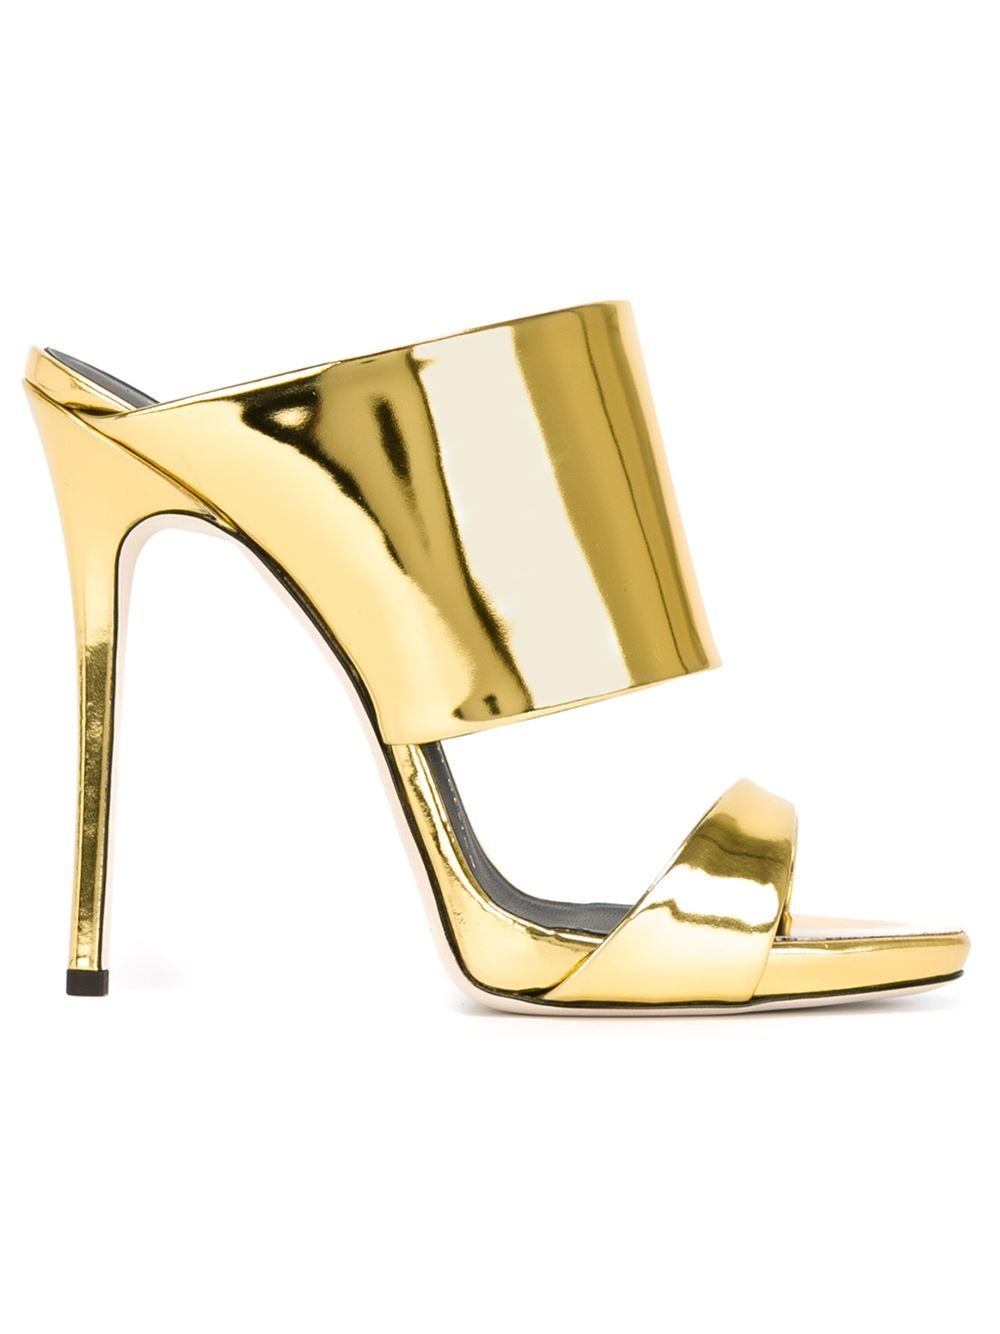 Giuseppe zanotti Patent-Leather Metallic Mules in Gold ...